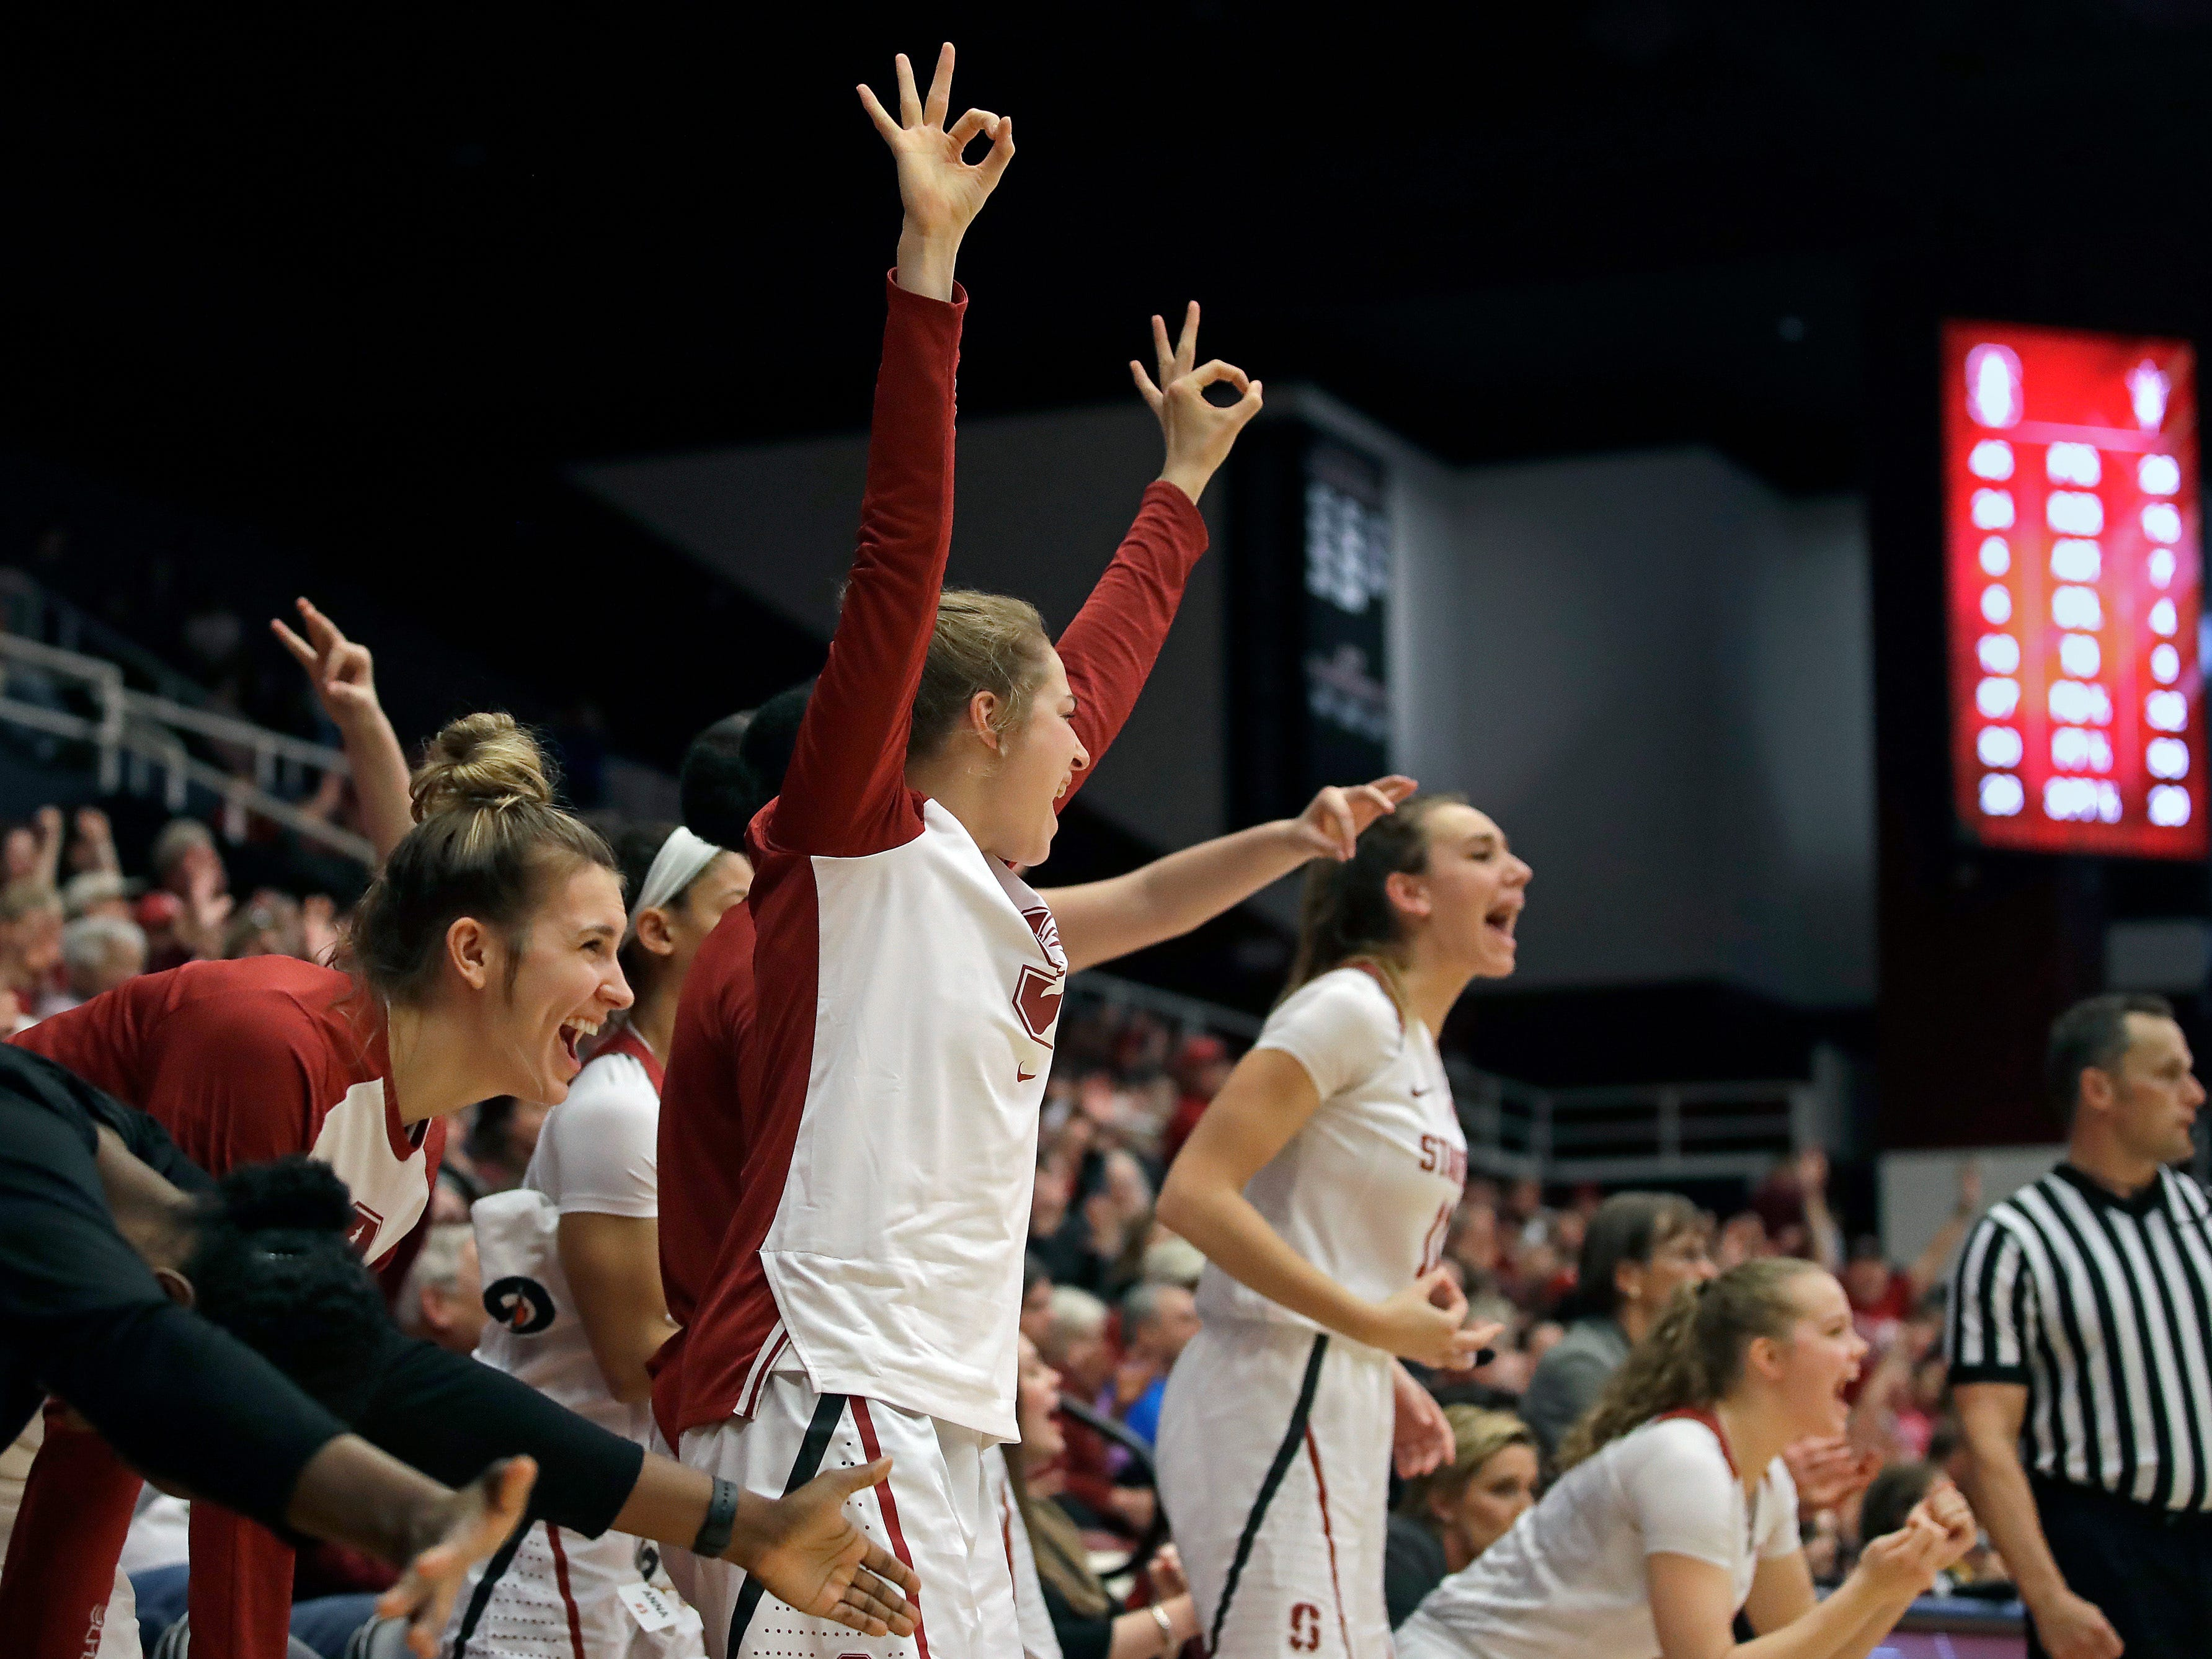 Players on the Stanford bench celebrate a score against Arizona State in the second half of an NCAA college basketball game Sunday, Feb. 24, 2019, in Stanford, Calif.